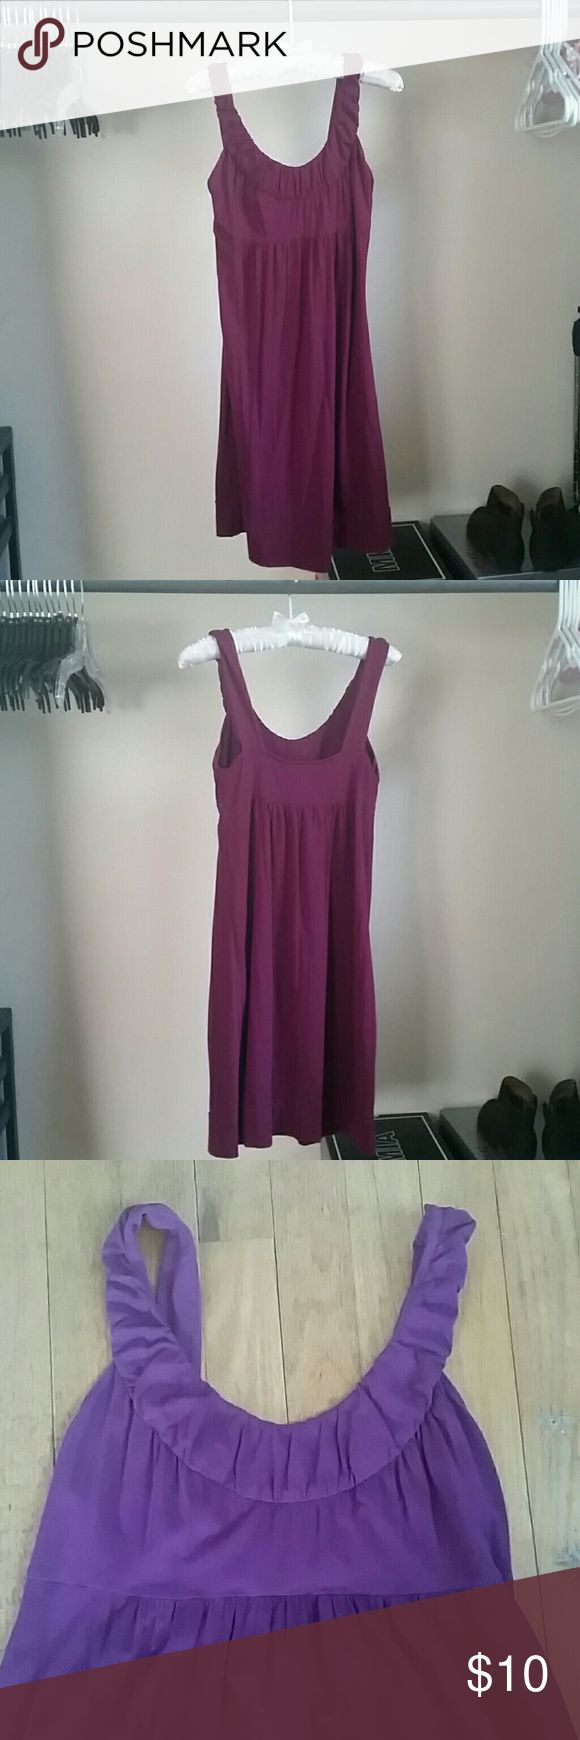 Loft Spring Dress Purple / Maroon dress by Loft. Ruffled top. Babydoll dress. Band around bottom hem of dress. Lightly worn. LOFT Dresses